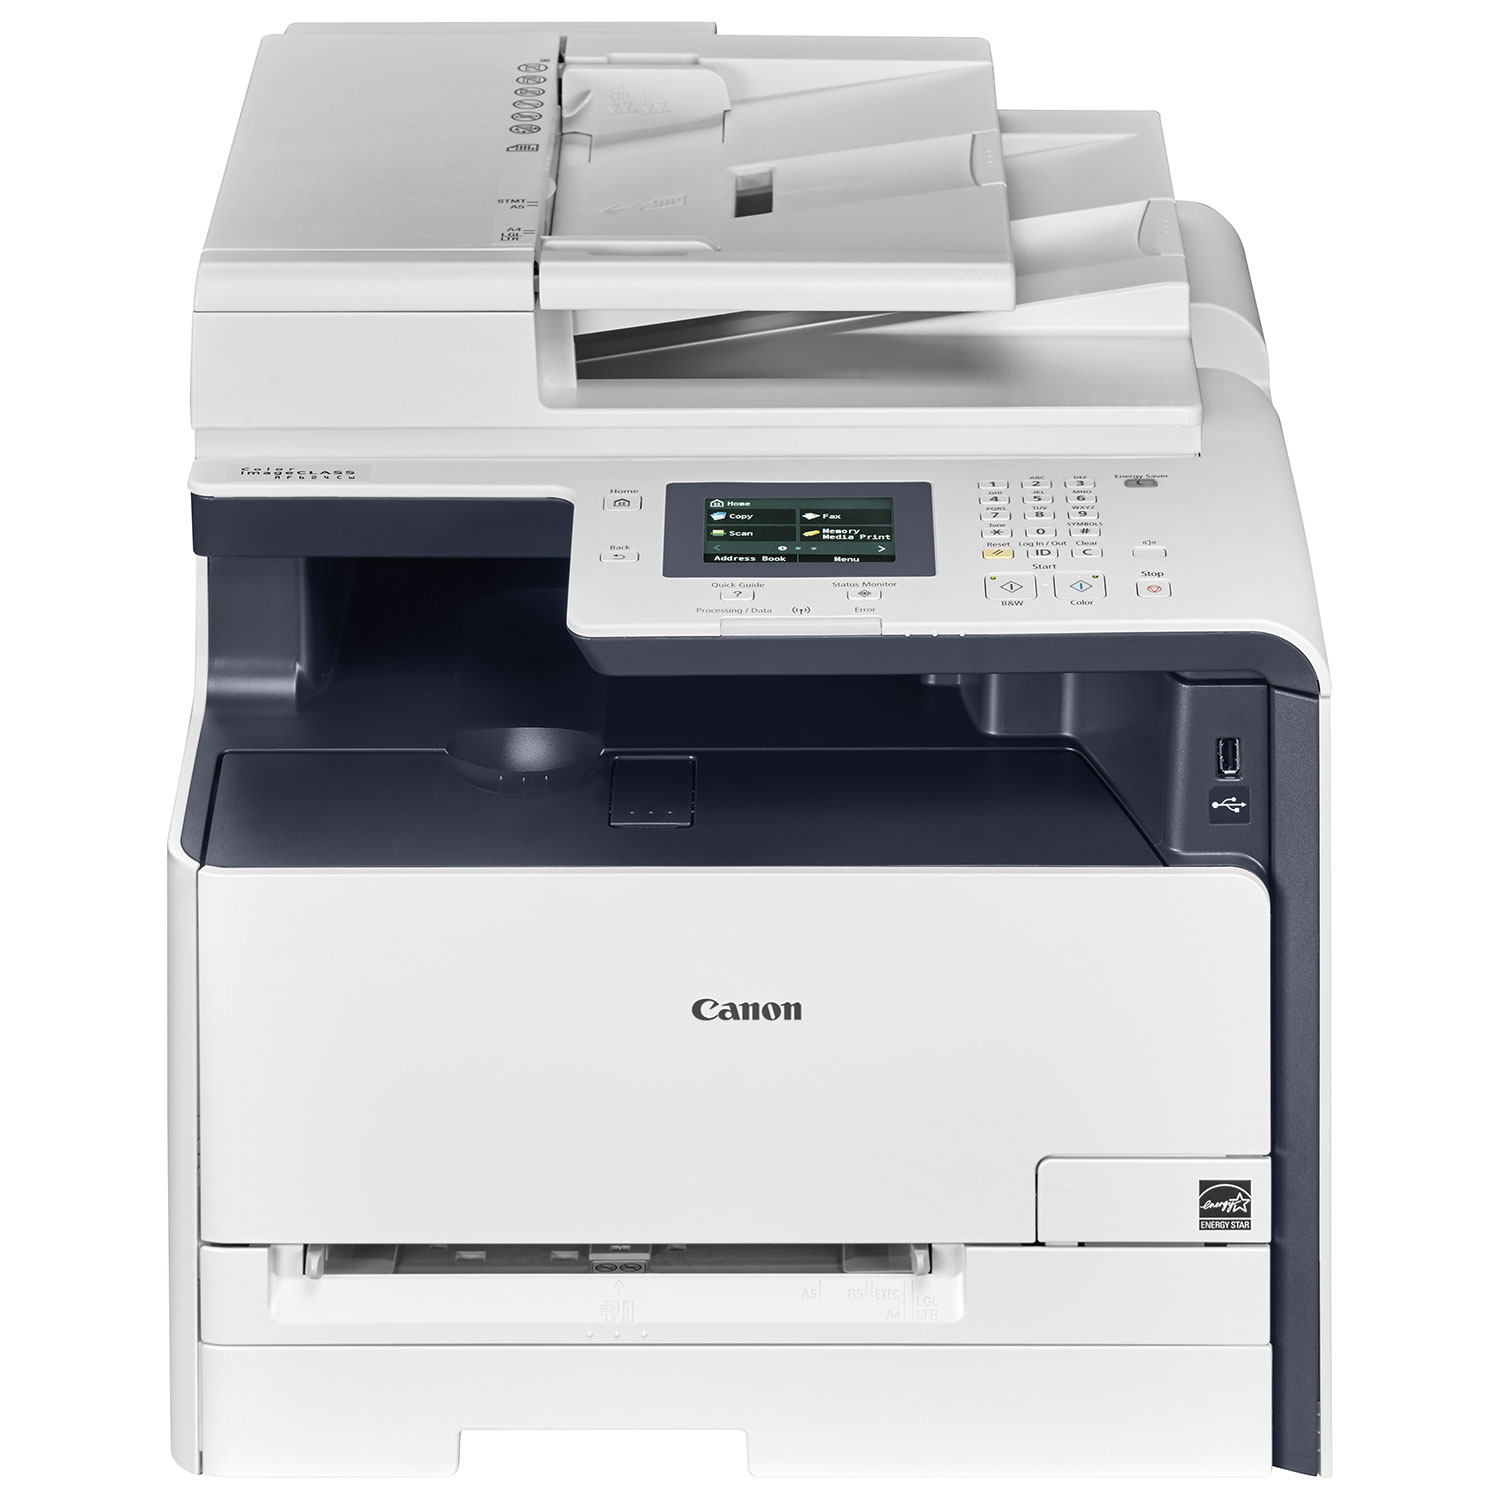 Color printers laser - Canon Imageclass Colour Wireless All In One Laser Printer Mf624w Laser Printers Best Buy Canada